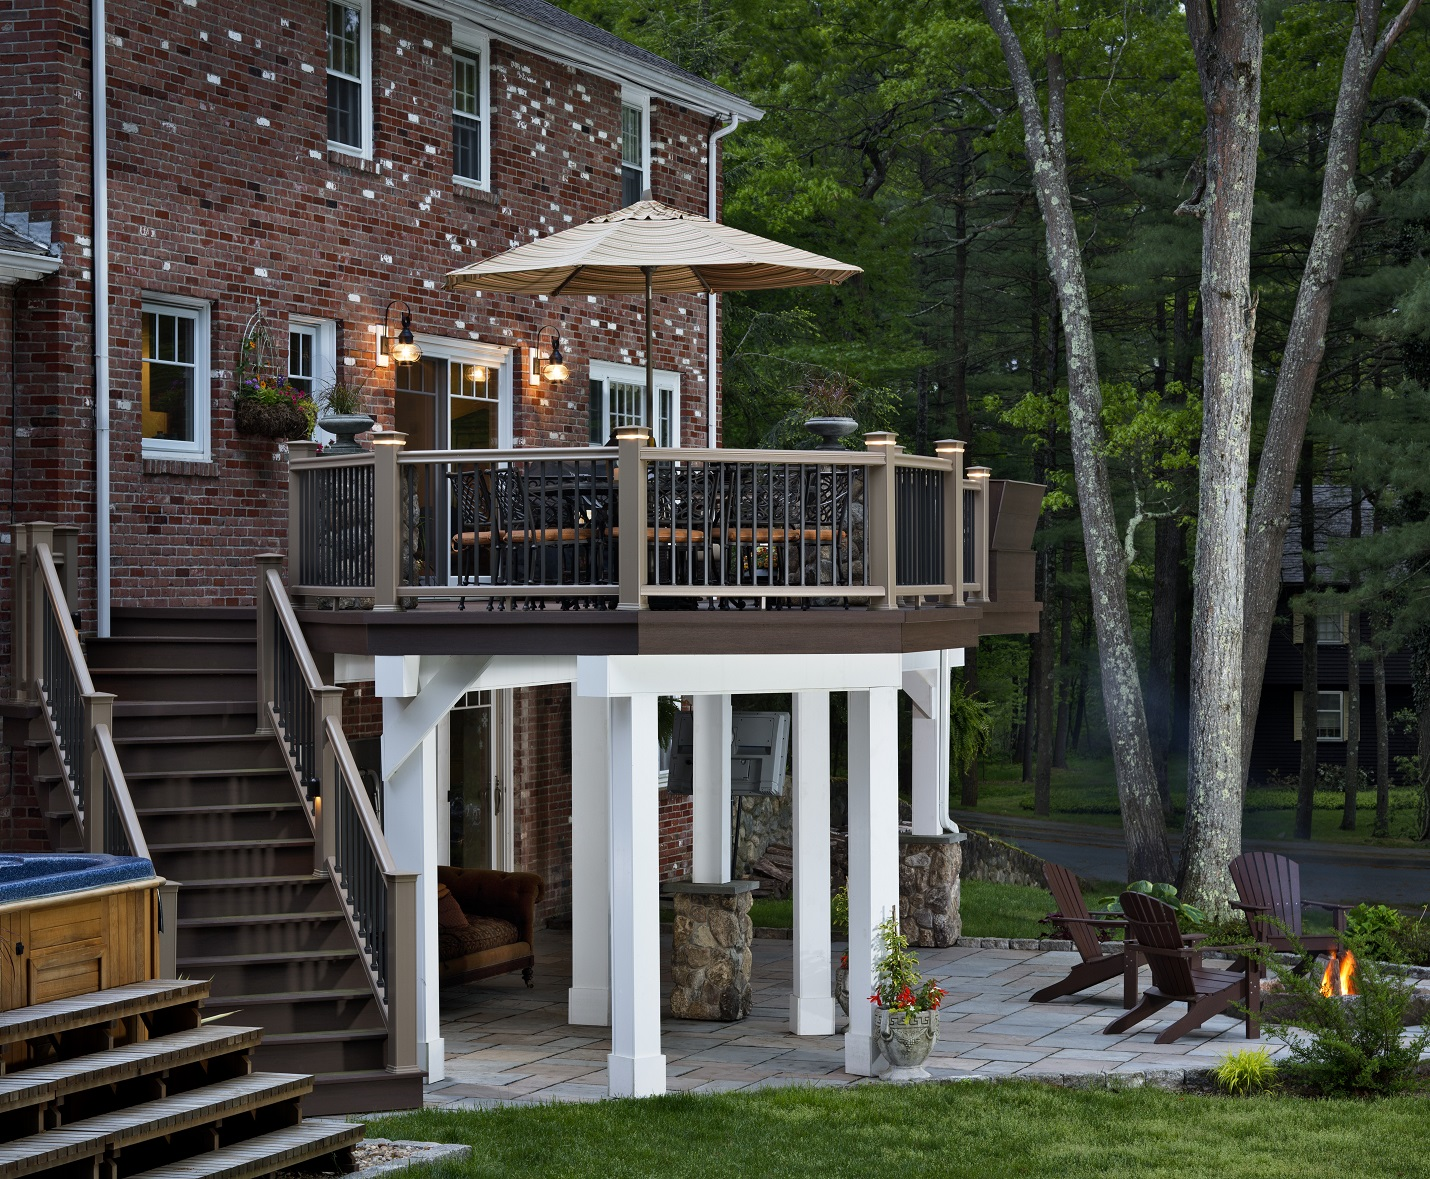 Outdoor-living-combination-design-including-an-elevated-deck-dry-deck-space-paver-patio-and-fire-pit